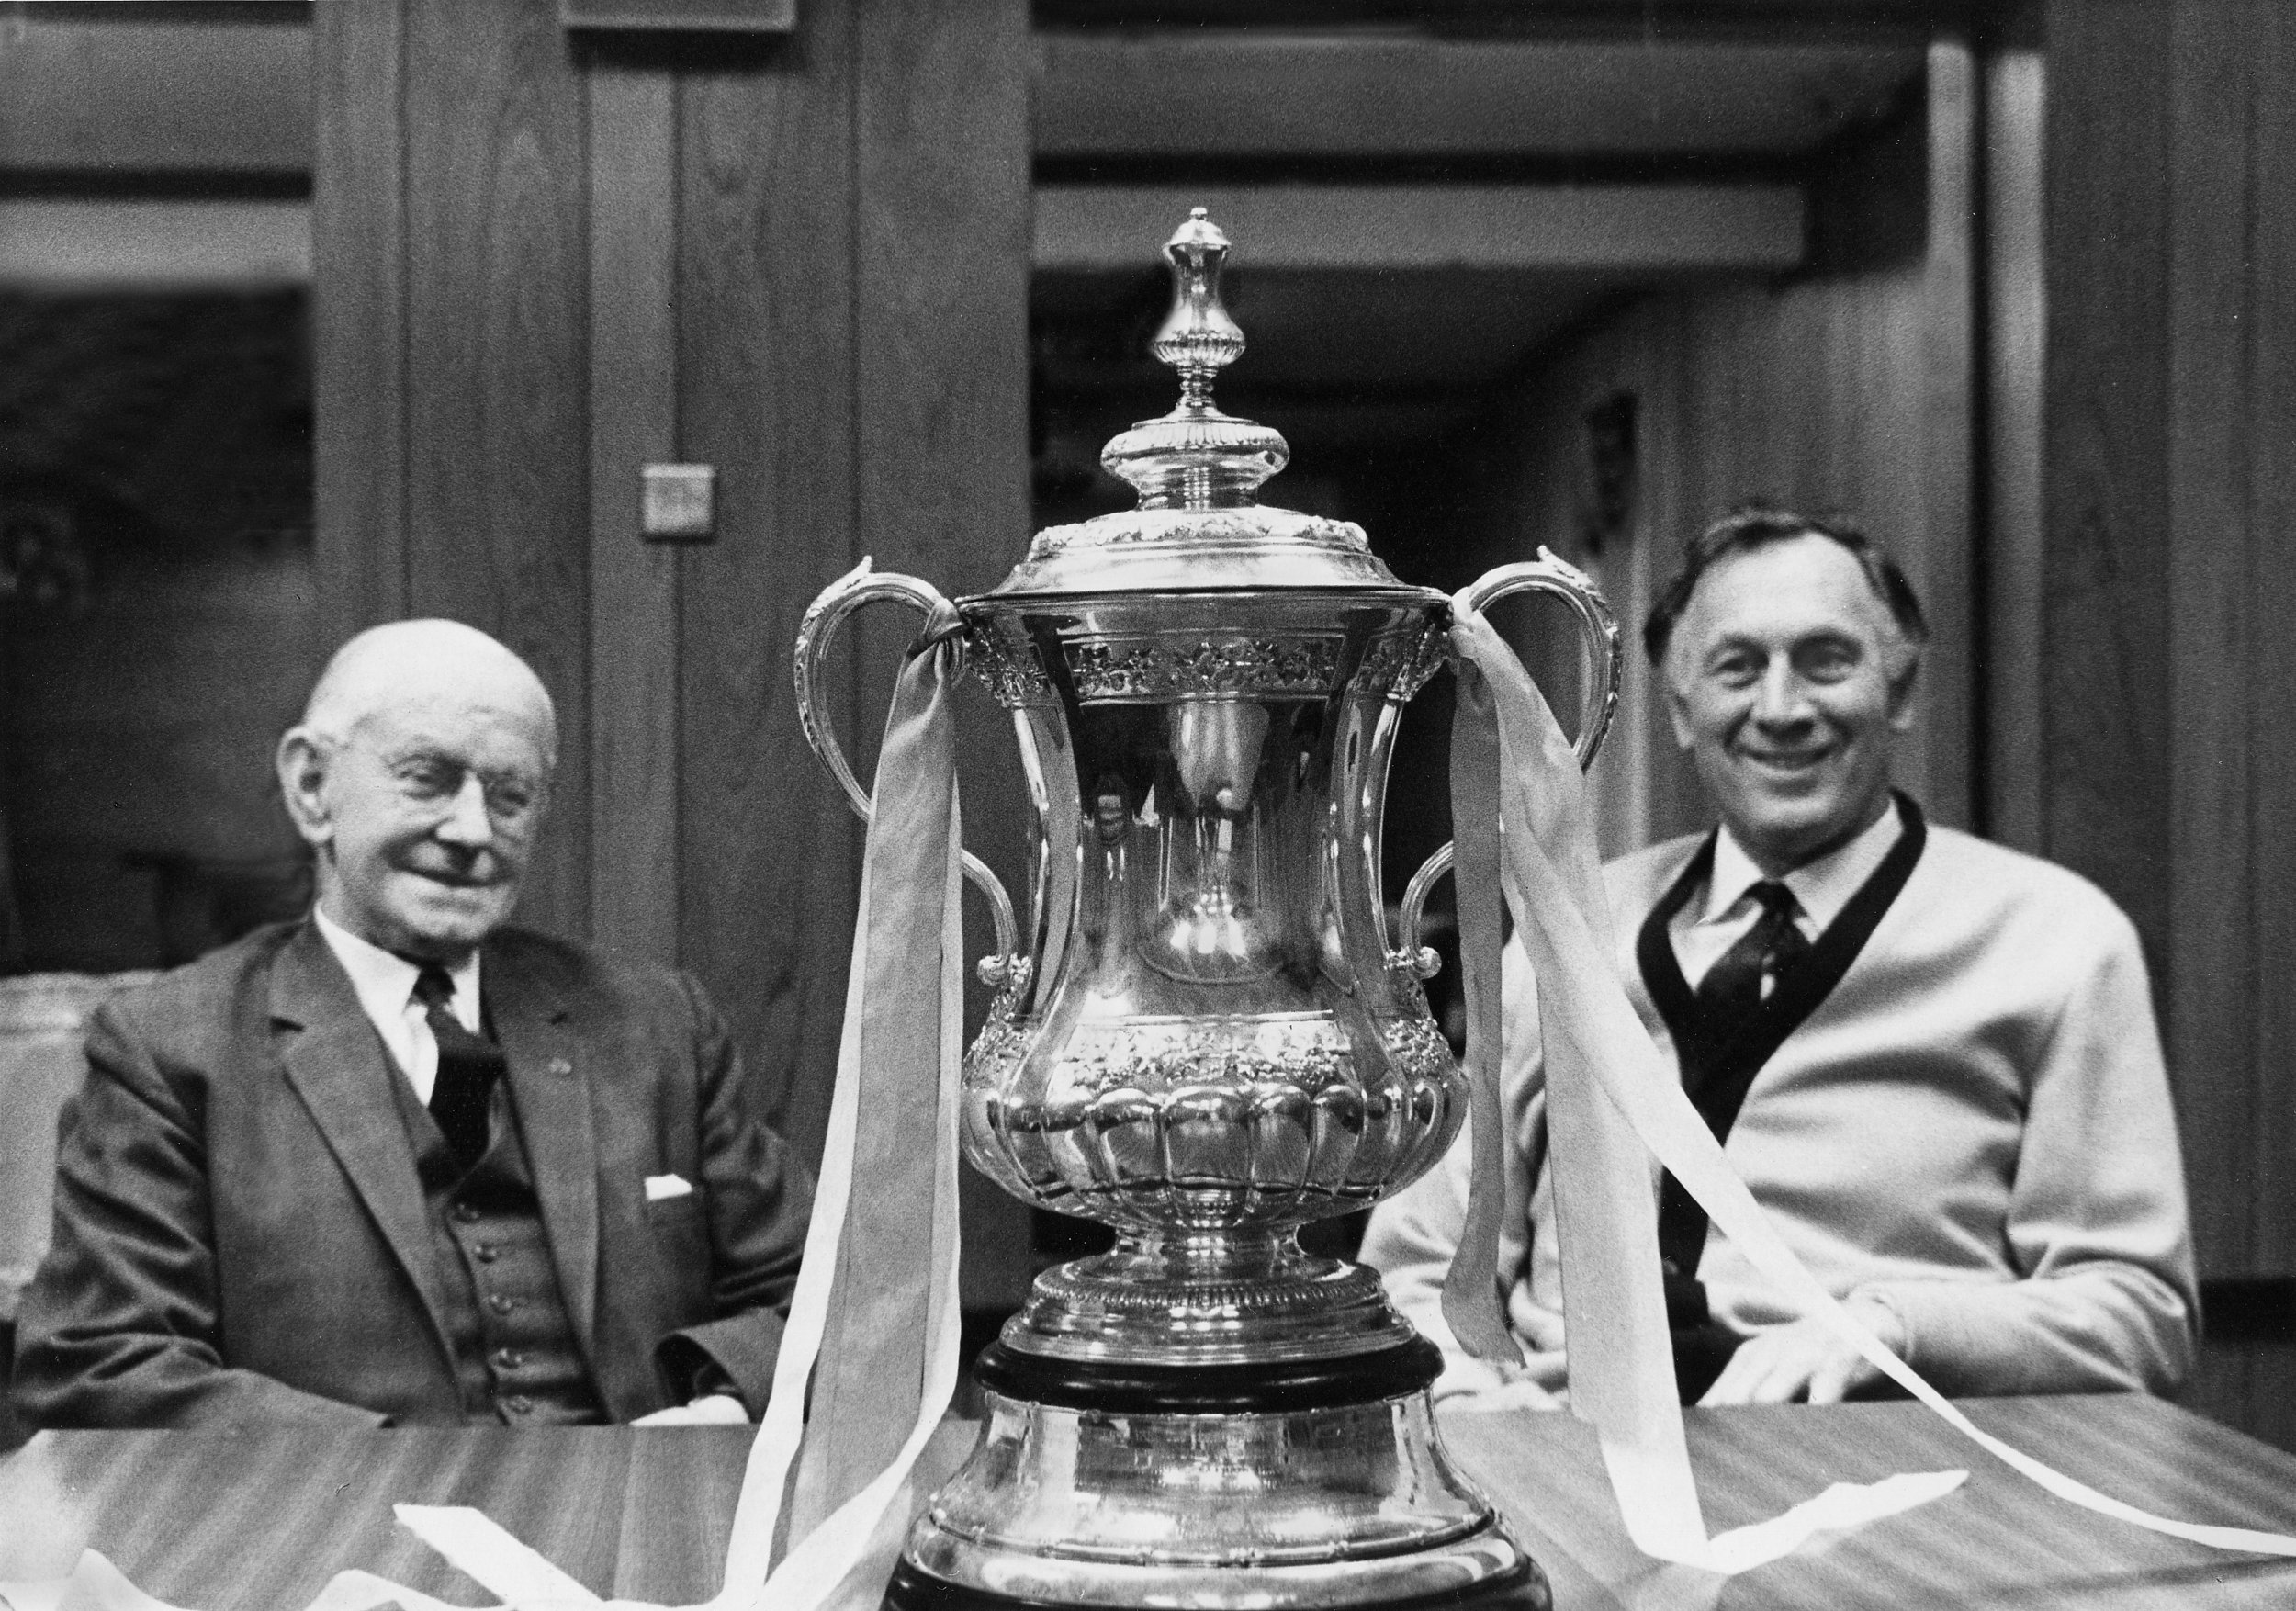 Man City FA Cup, A.V. Alexander & manager Joe Mercer (1969)